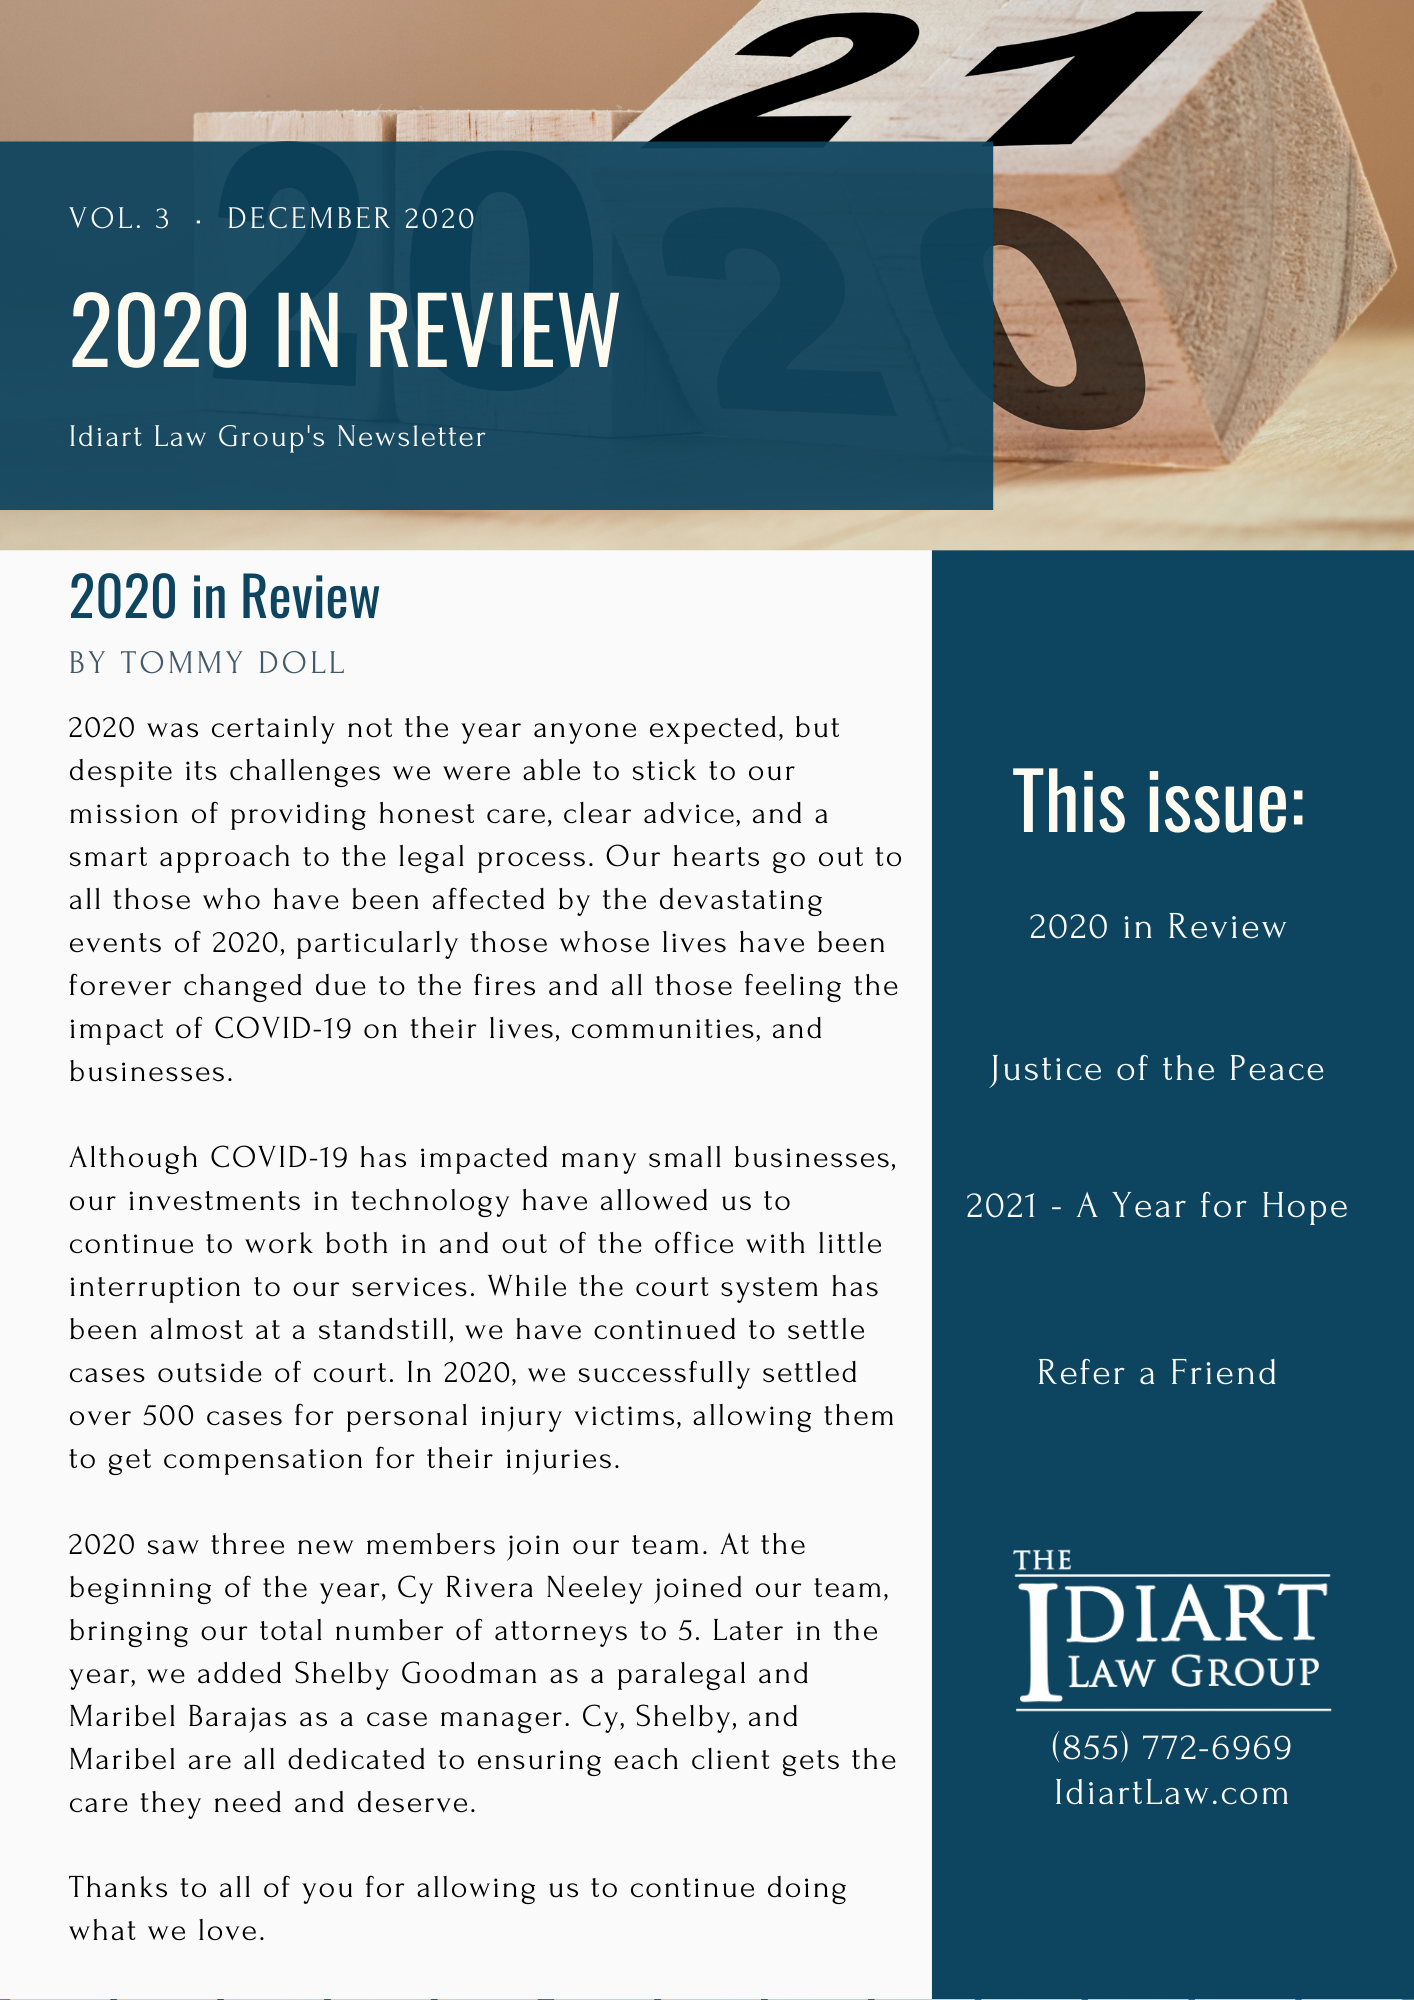 2020 was certainly not the year anyone expected, but despite its challenges we were able to stick to our mission of providing honest care, clear advice, and a smart approach to the legal process. Our hearts go out to all those who have been affected by the devastating events of 2020, particularly those whose lives have been forever changed due to the fires and all those feeling the impact of COVID-19 on their lives, communities, and businesses.   Although COVID-19 has impacted many small businesses, our investments in technology have allowed us to continue to work both in and out of the office with little interruption to our services. While the court system has been almost at a standstill, we have continued to settle cases outside of court. In 2020, we successfully settled over 500 cases for personal injury victims, allowing them to get compensation for their injuries.   2020 saw three new members join our team. At the beginning of the year, Cy Rivera Neeley joined our team, bringing our total number of attorneys to 5. Later in the year, we added Shelby Goodman as a paralegal and Maribel Barajas as a case manager. Cy, Shelby, and Maribel are all dedicated to ensuring each client gets the care they need and deserve.   Thanks to all of you for allowing us to continue doing what we love.